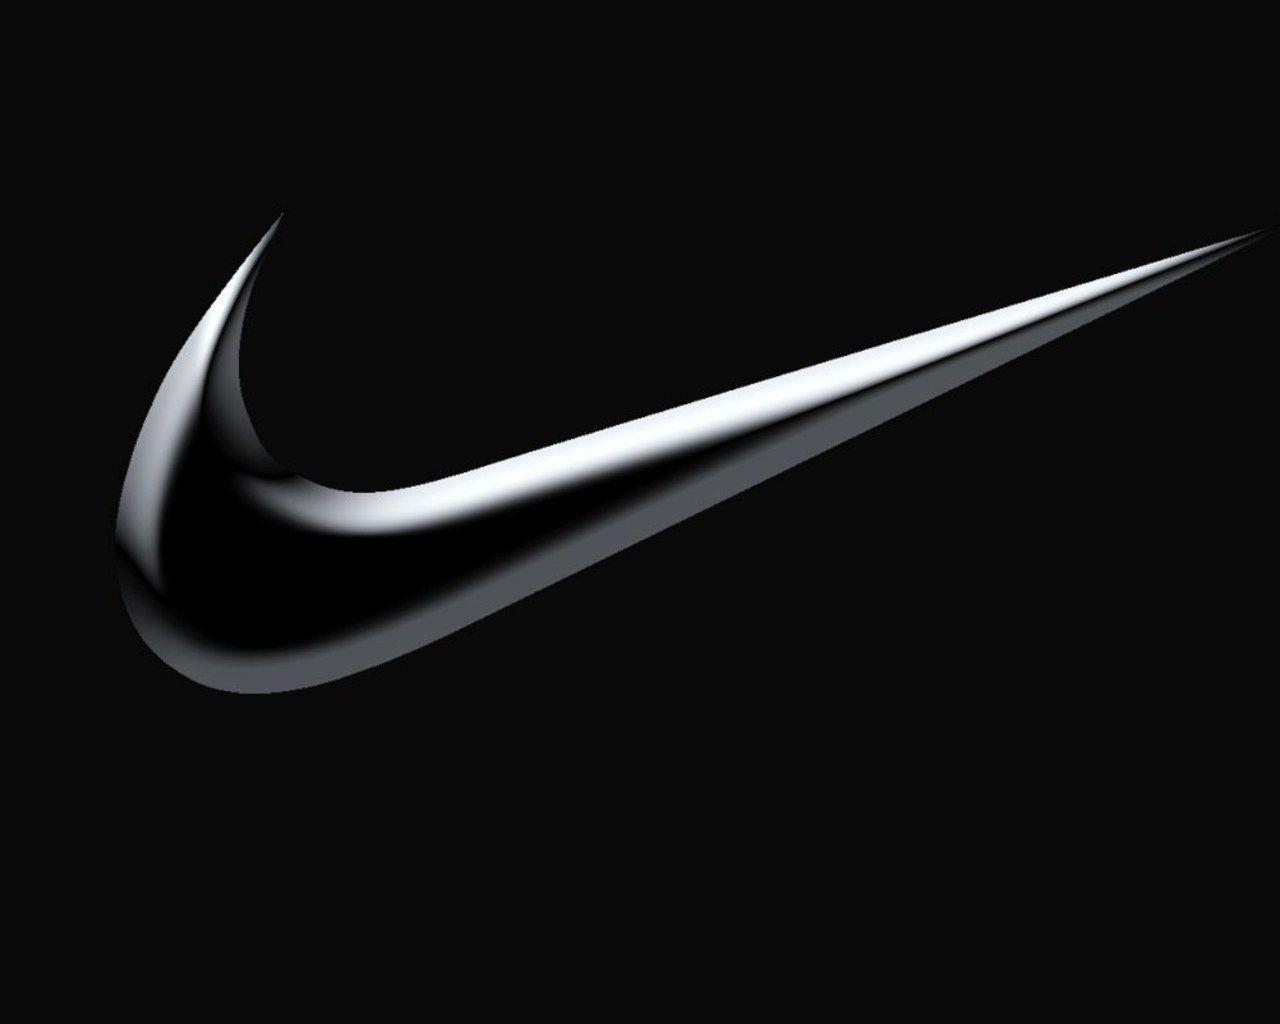 Nike Wallpapers and Background